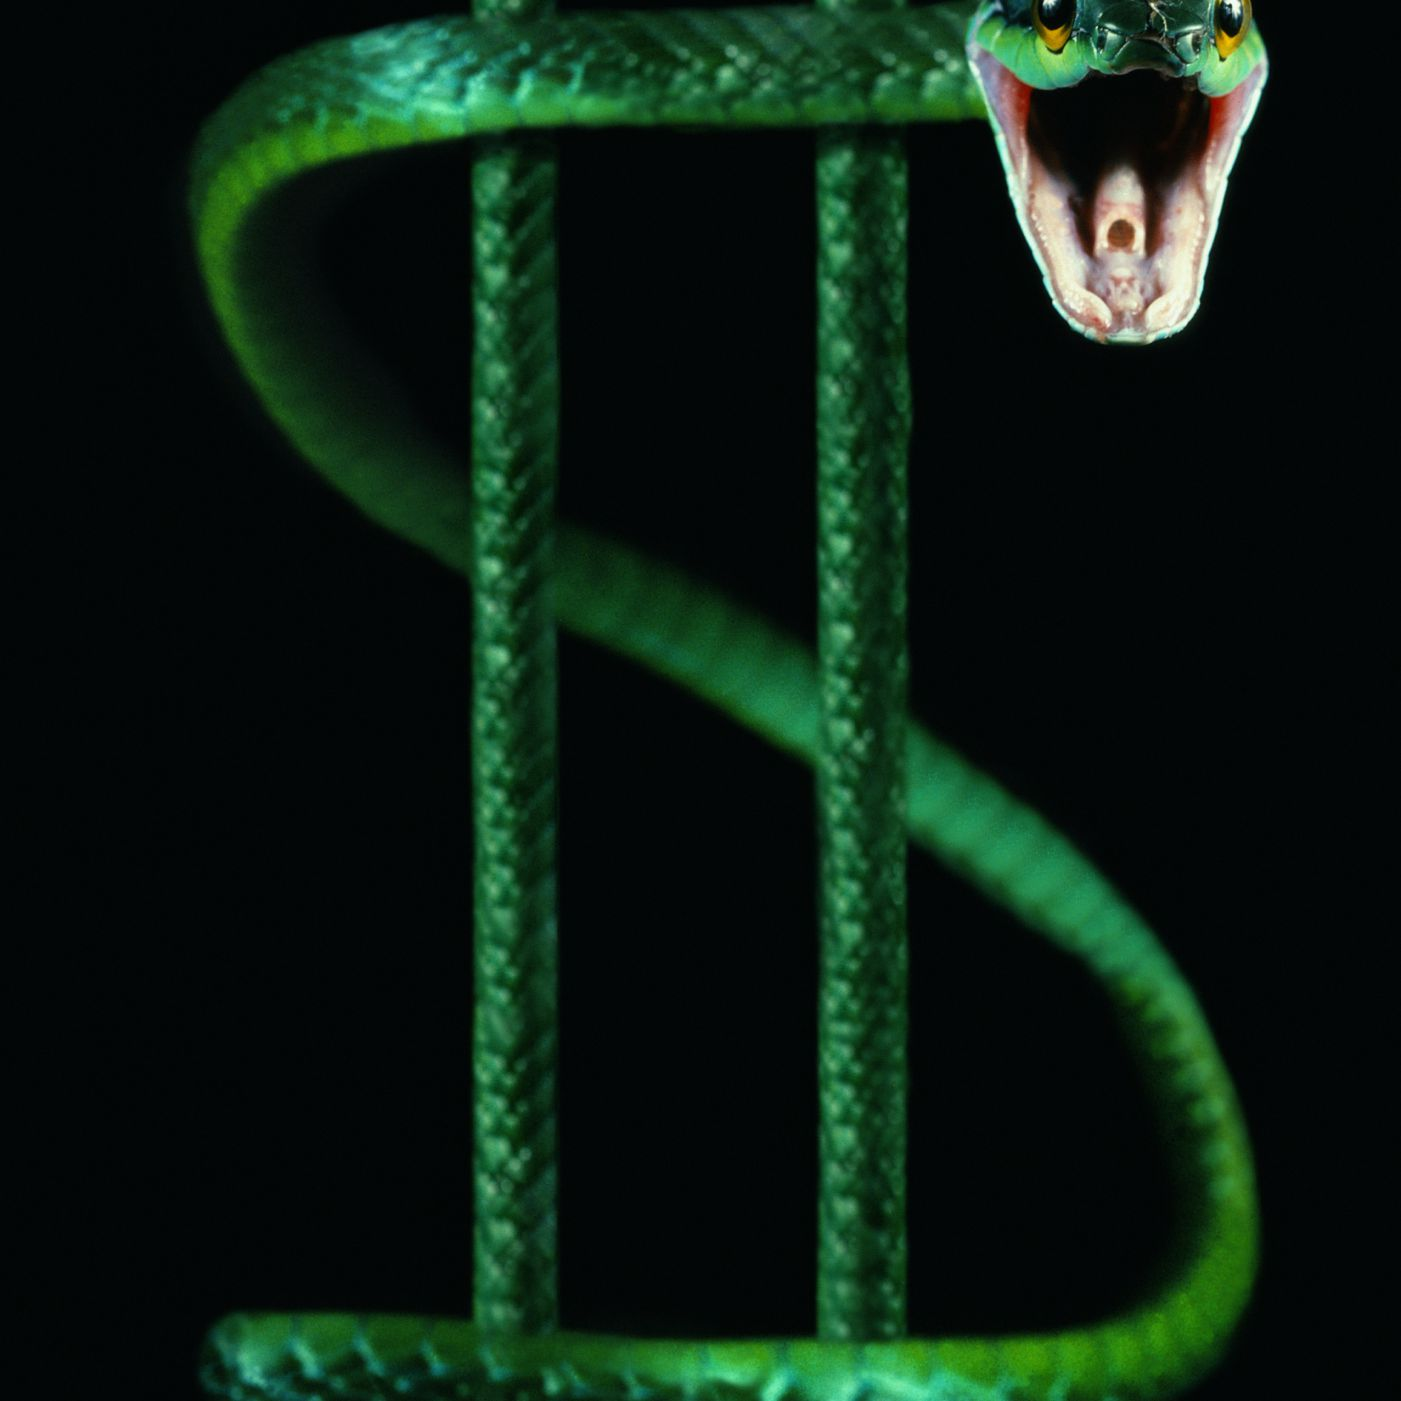 Image of a snake wrapped around a dollar sign.